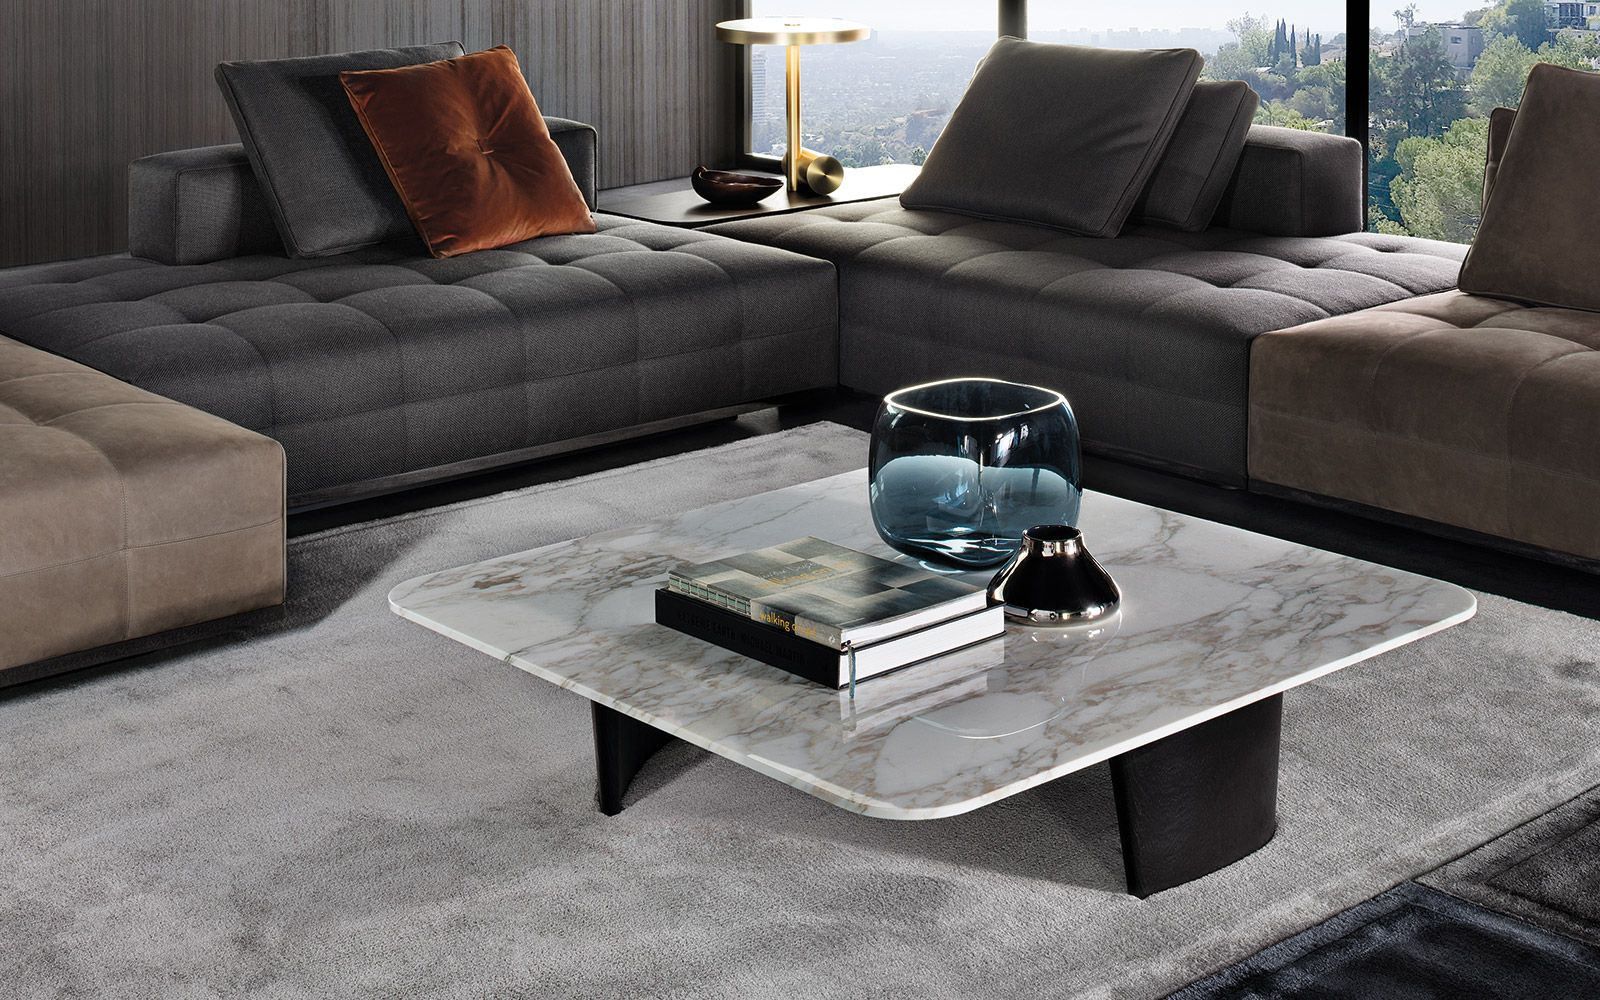 Song Coffee Tables En A Lavish Collection Of Extremely Versatile Coffee Tables Thanks To The Variety Of Finishes Coffee Table Furniture Table Furniture [ 1000 x 1600 Pixel ]